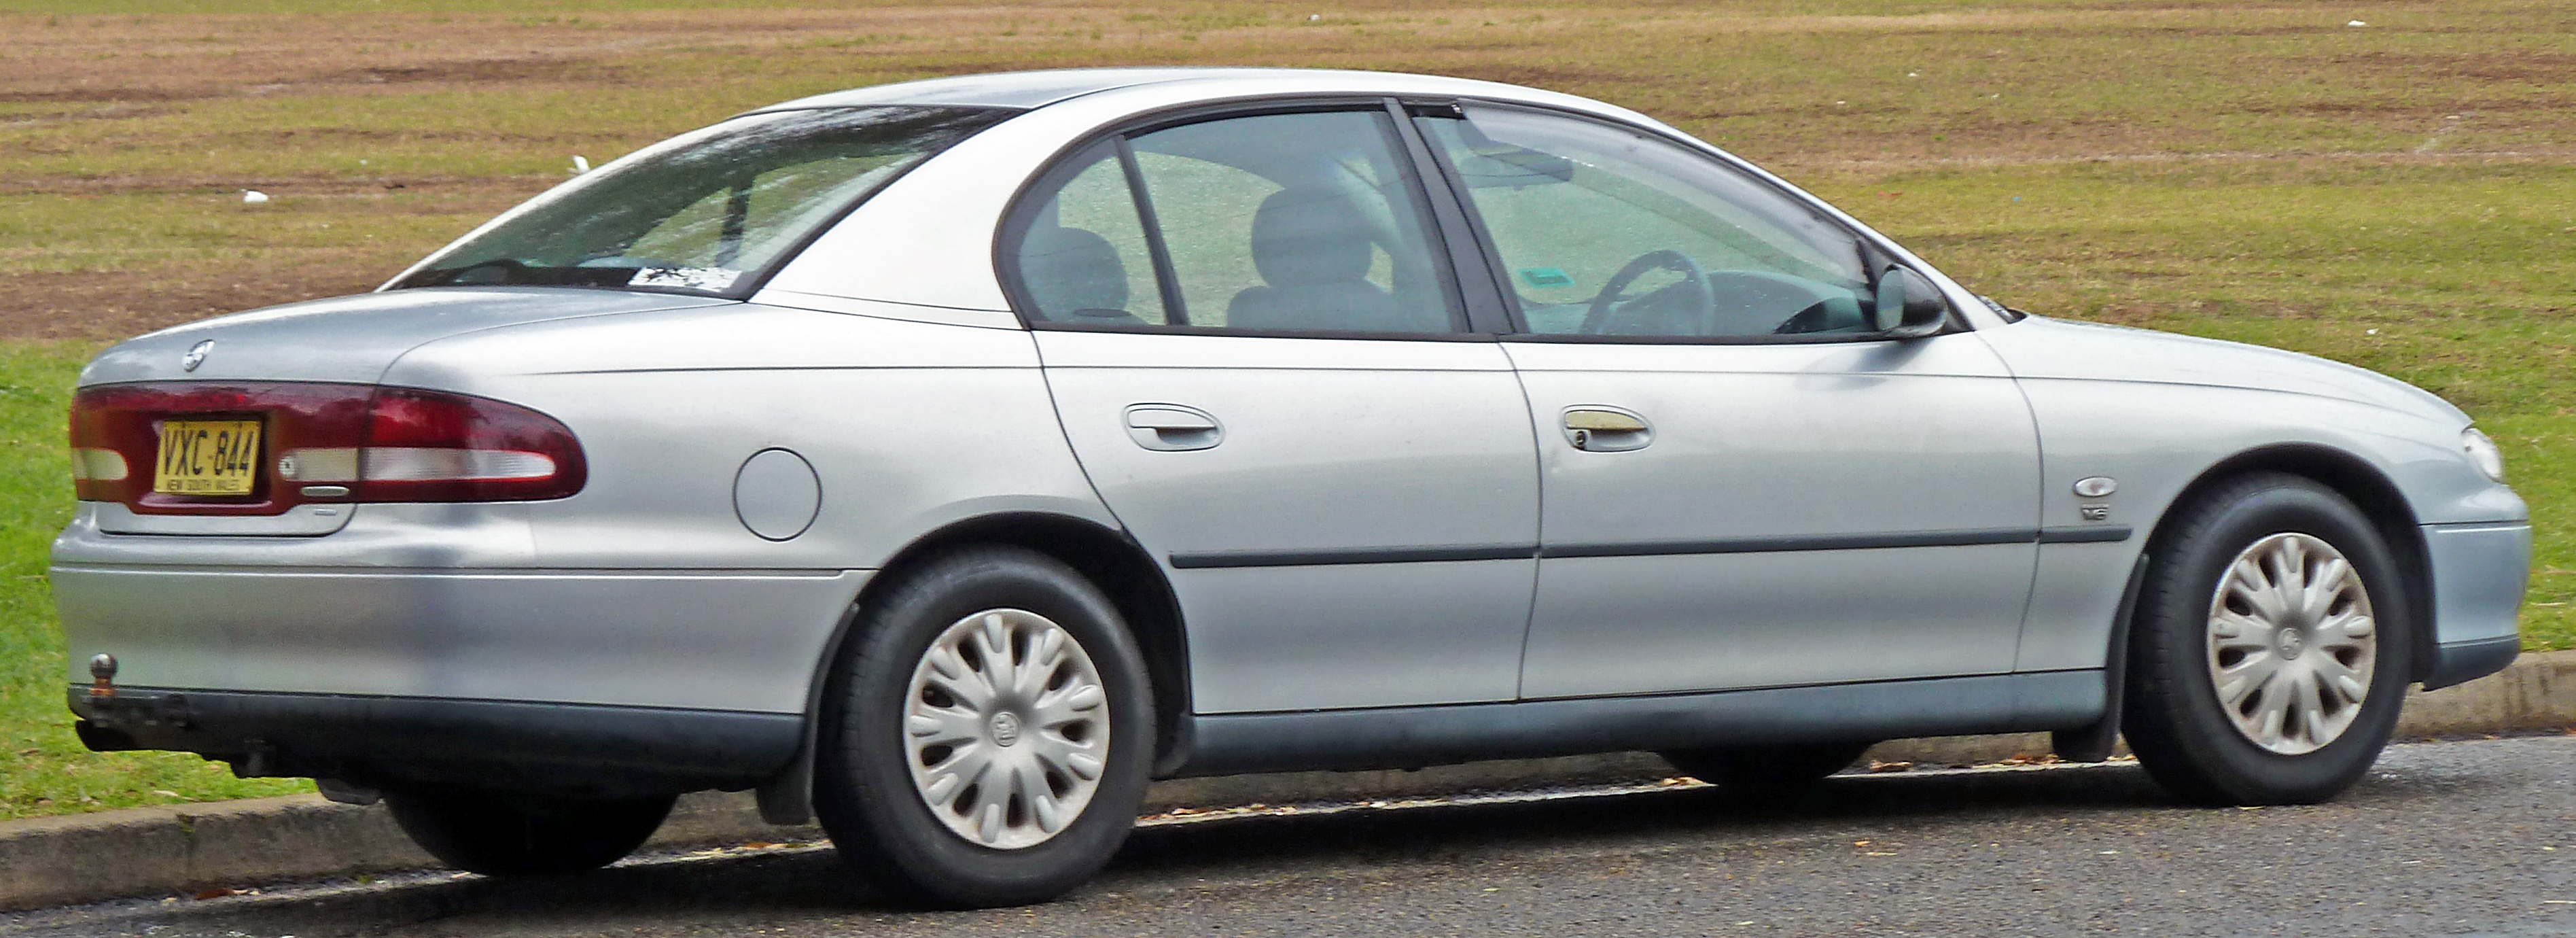 Pictures of holden commodore (vt) 2010 #8